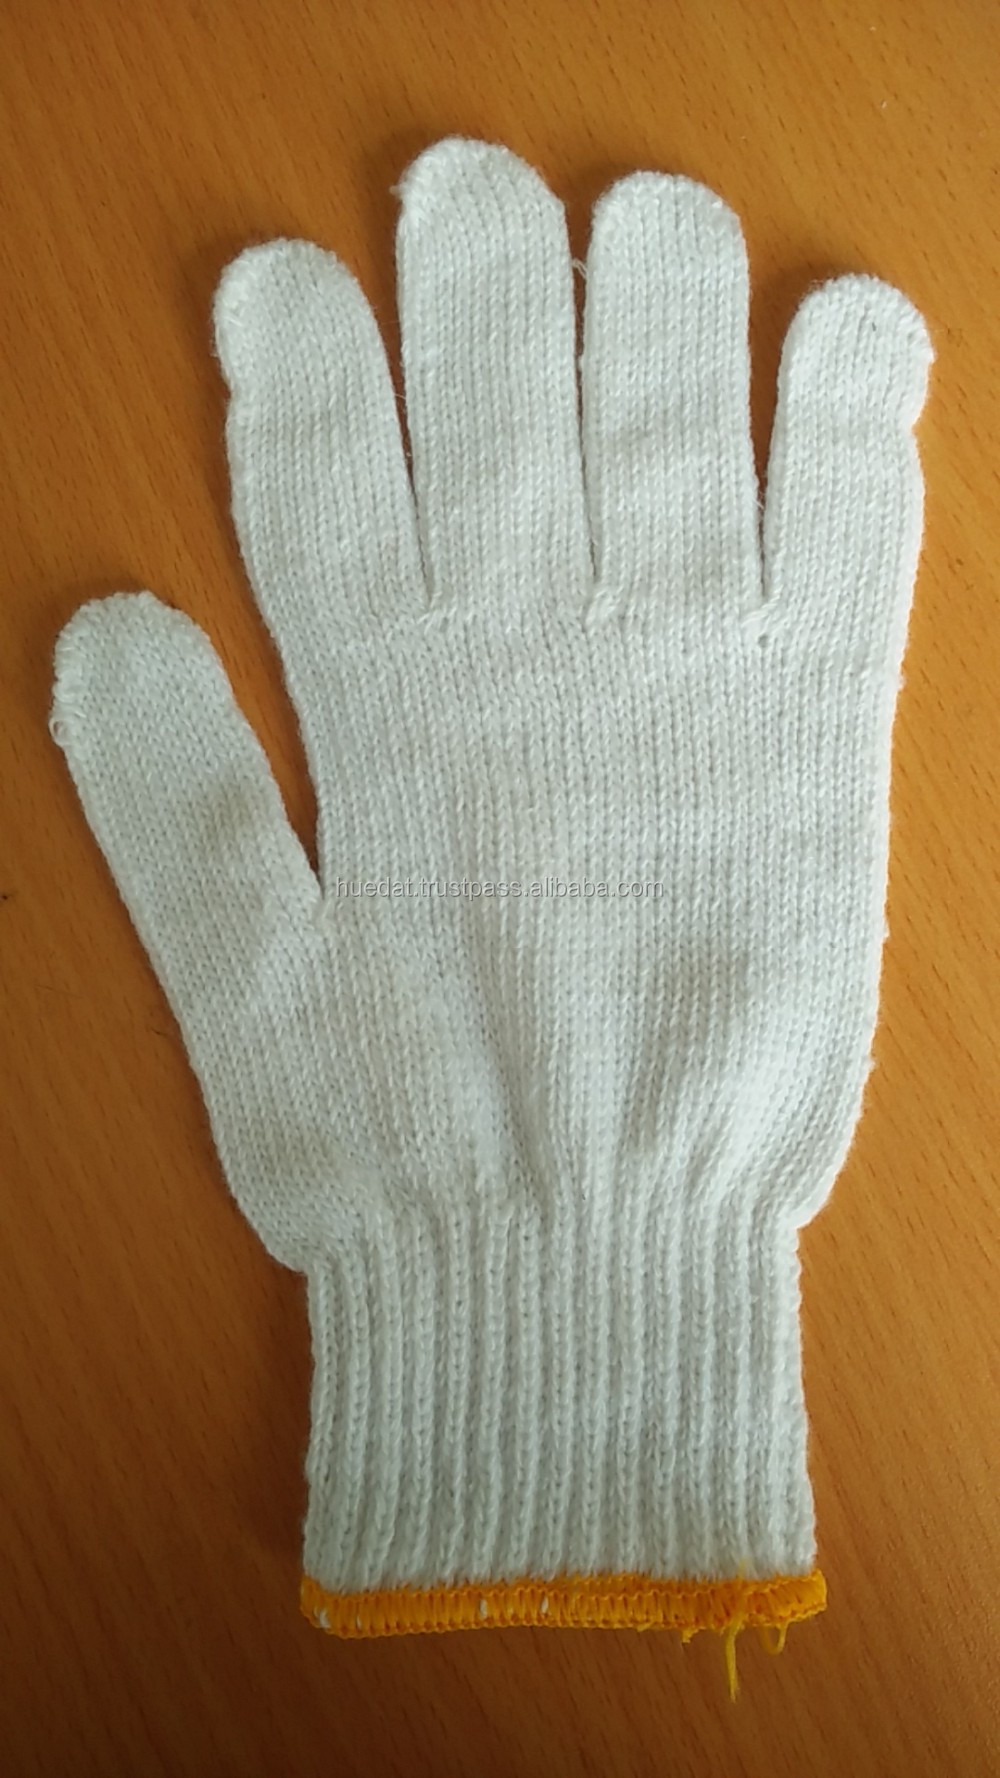 Hot-selling! hand gloves for construction work, knitted hand gloves,